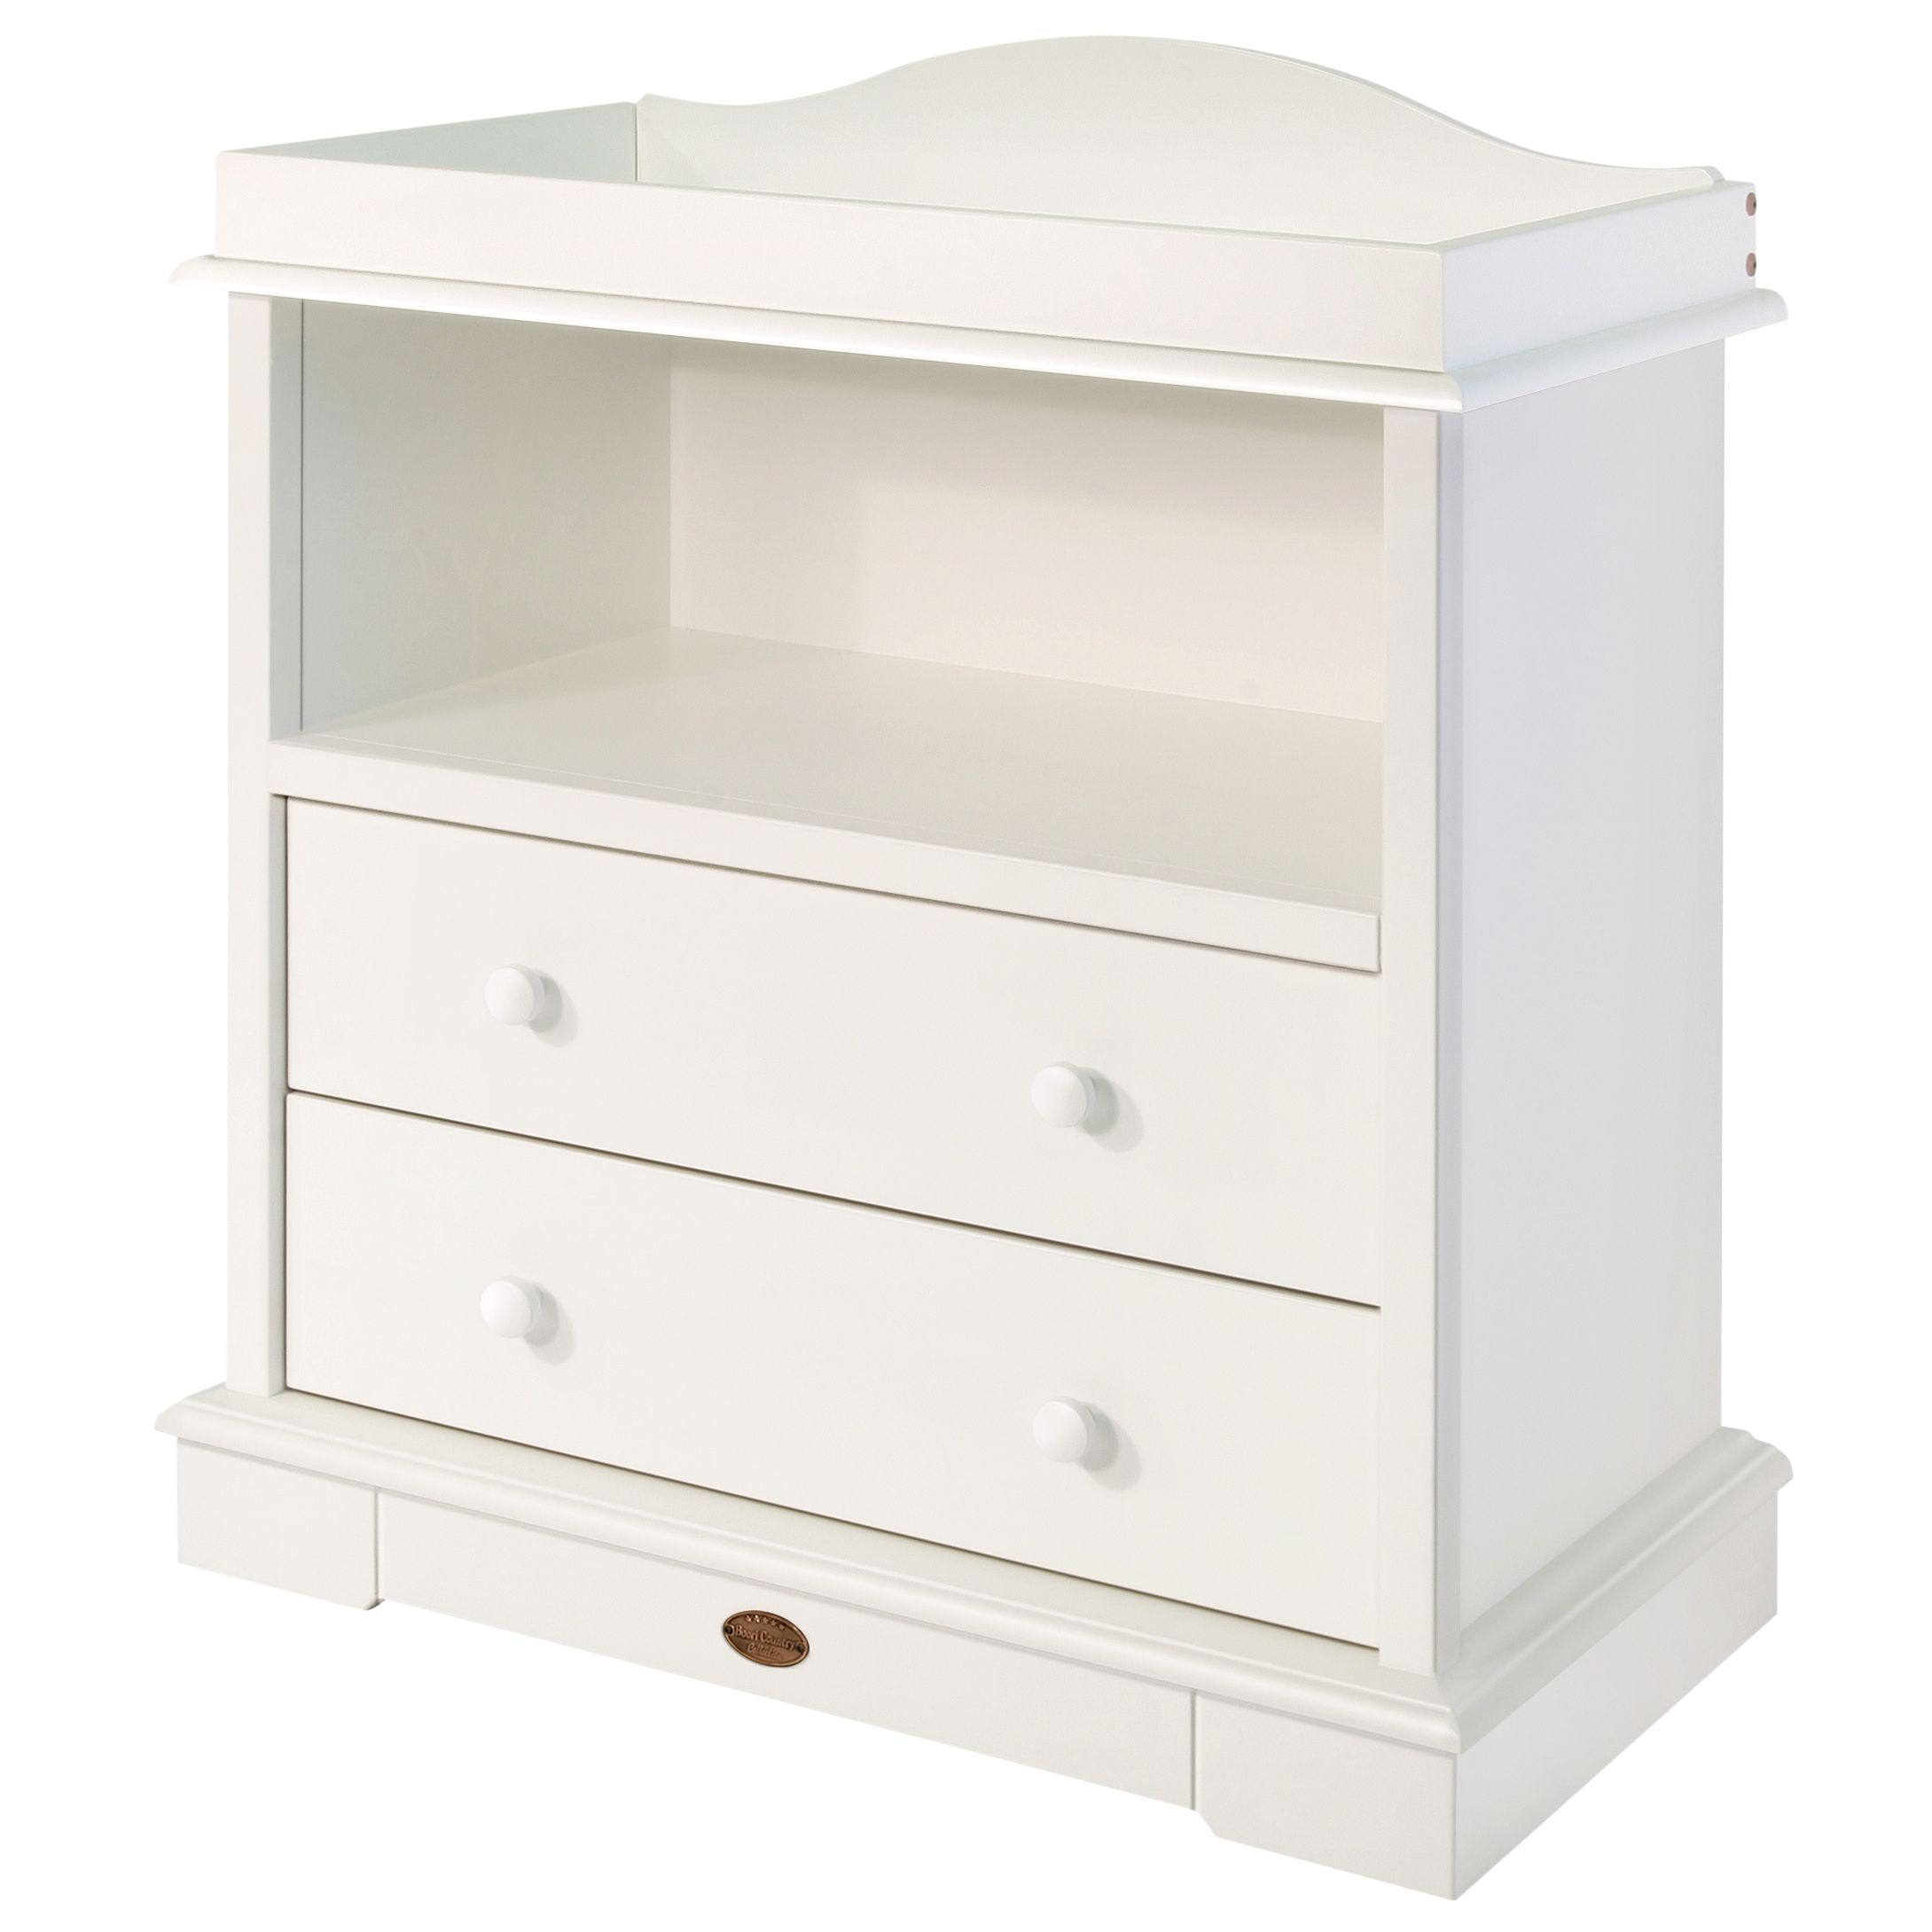 2 Drawer Chest and Changing Unit, White